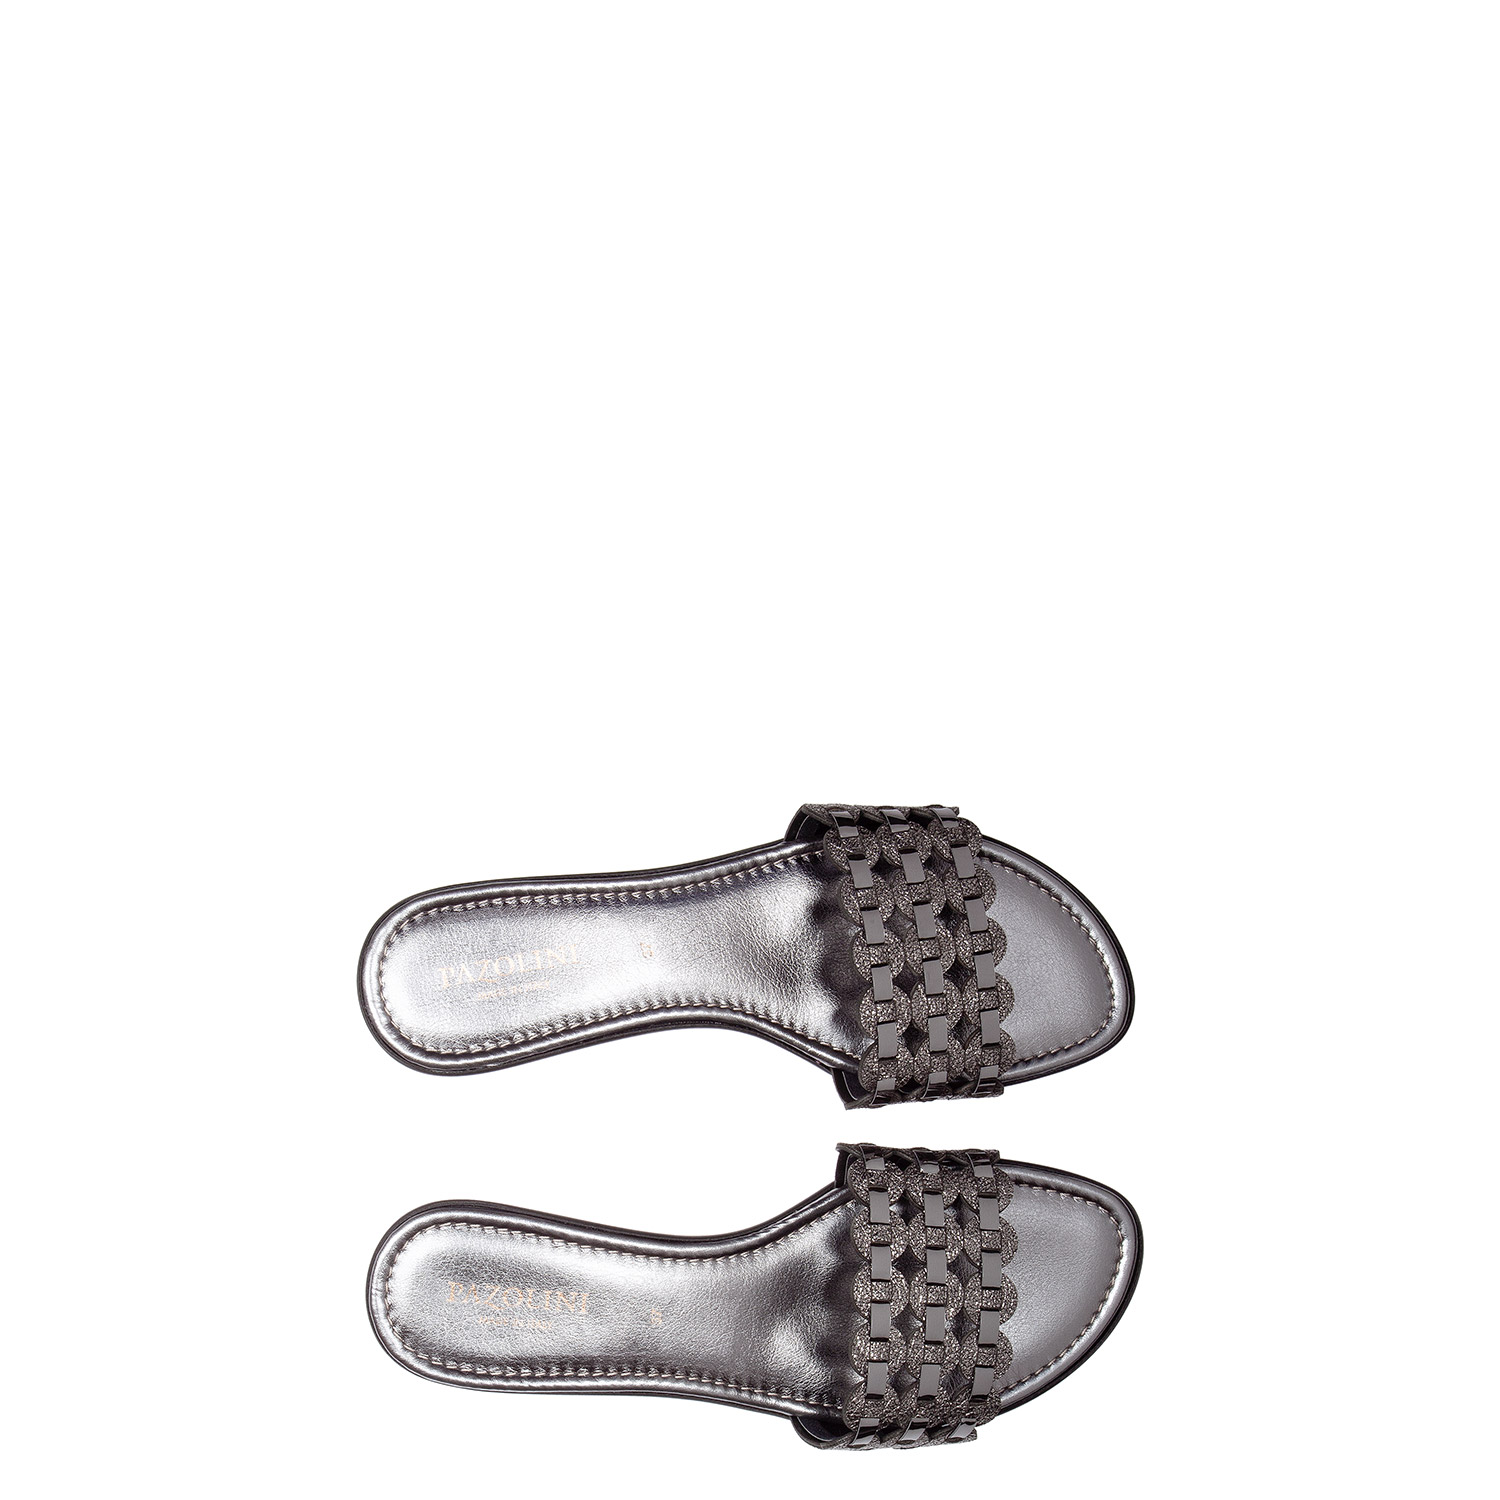 Men's sandals PAZOLINI CE-X2224-8